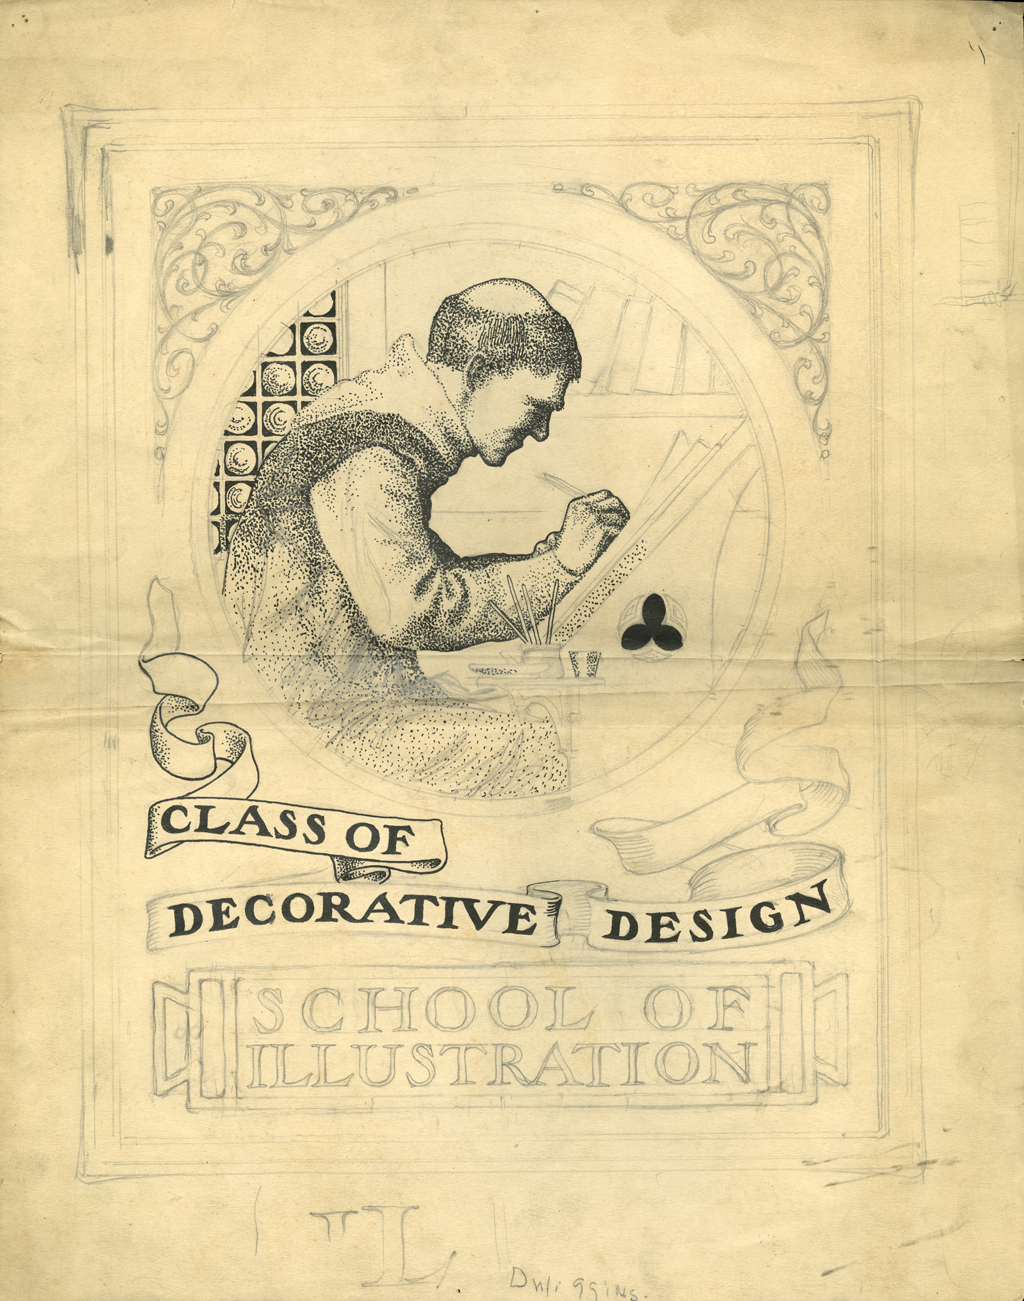 Unfinished Class of Decorative Design assignment (c.1900) by W.A. Dwiggins. Courtesy of The Newberry Library.